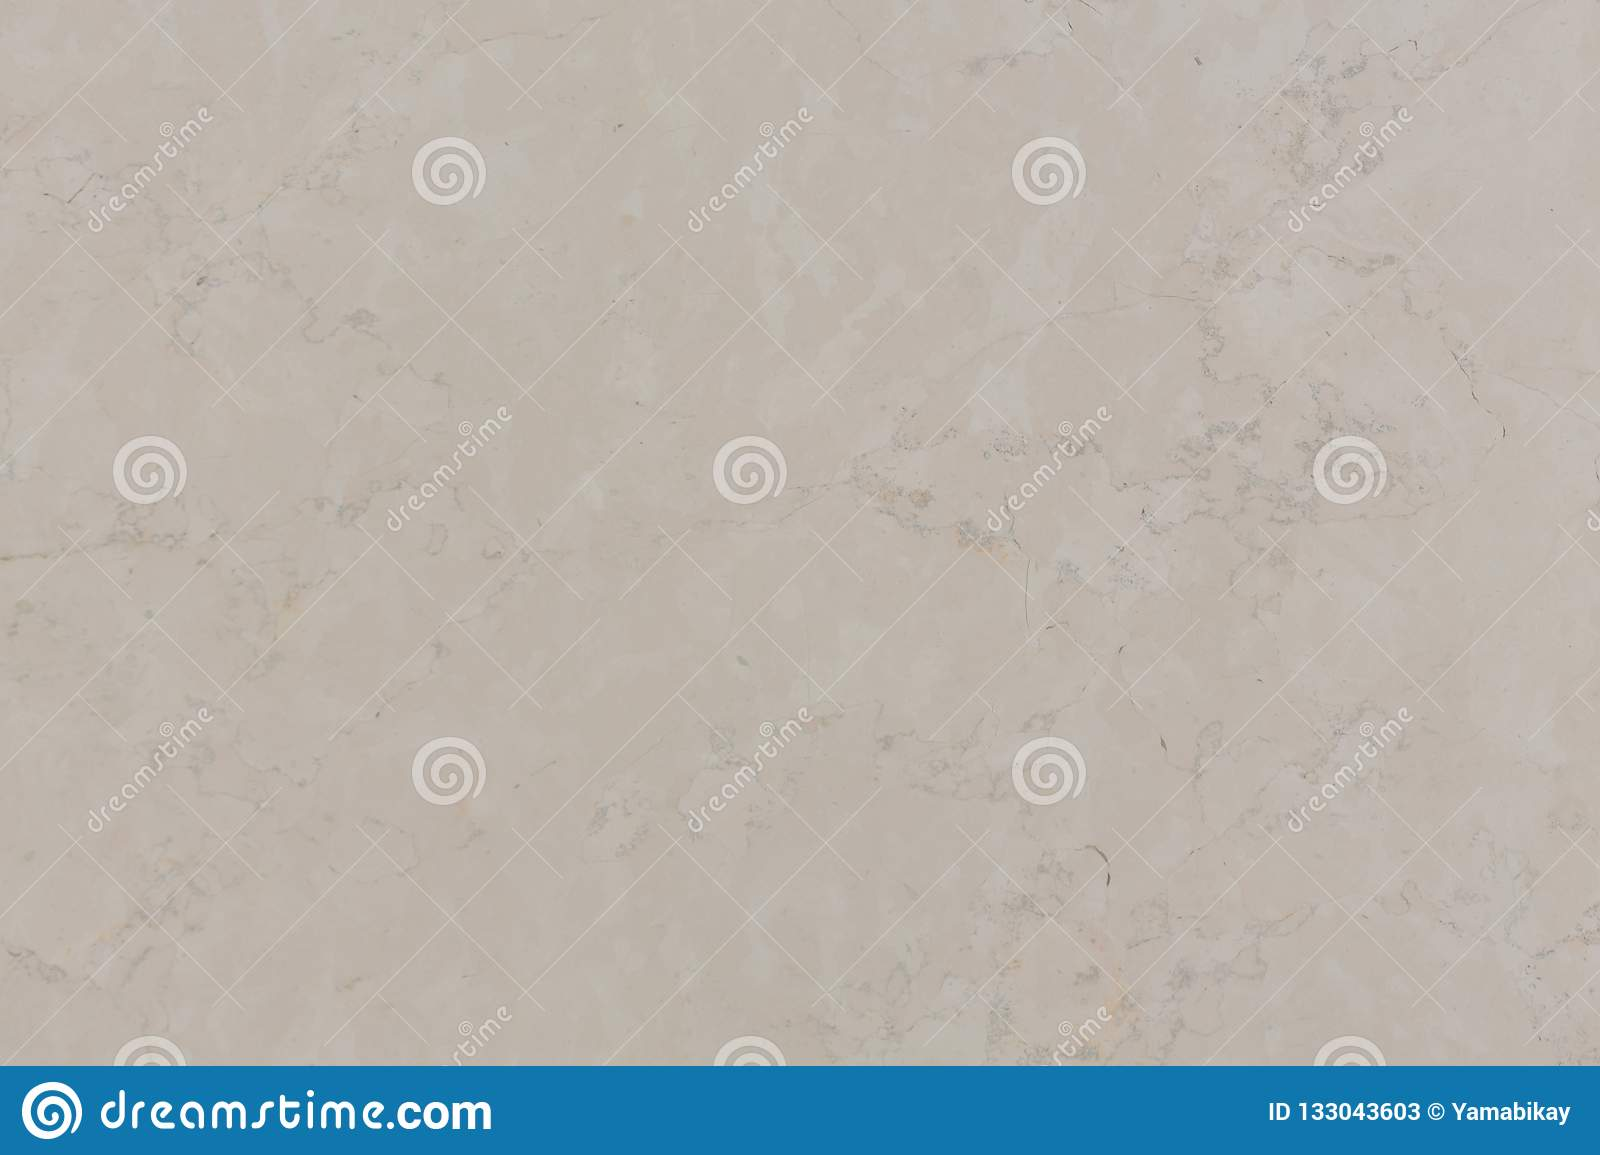 Close up of marble texture background pattern.